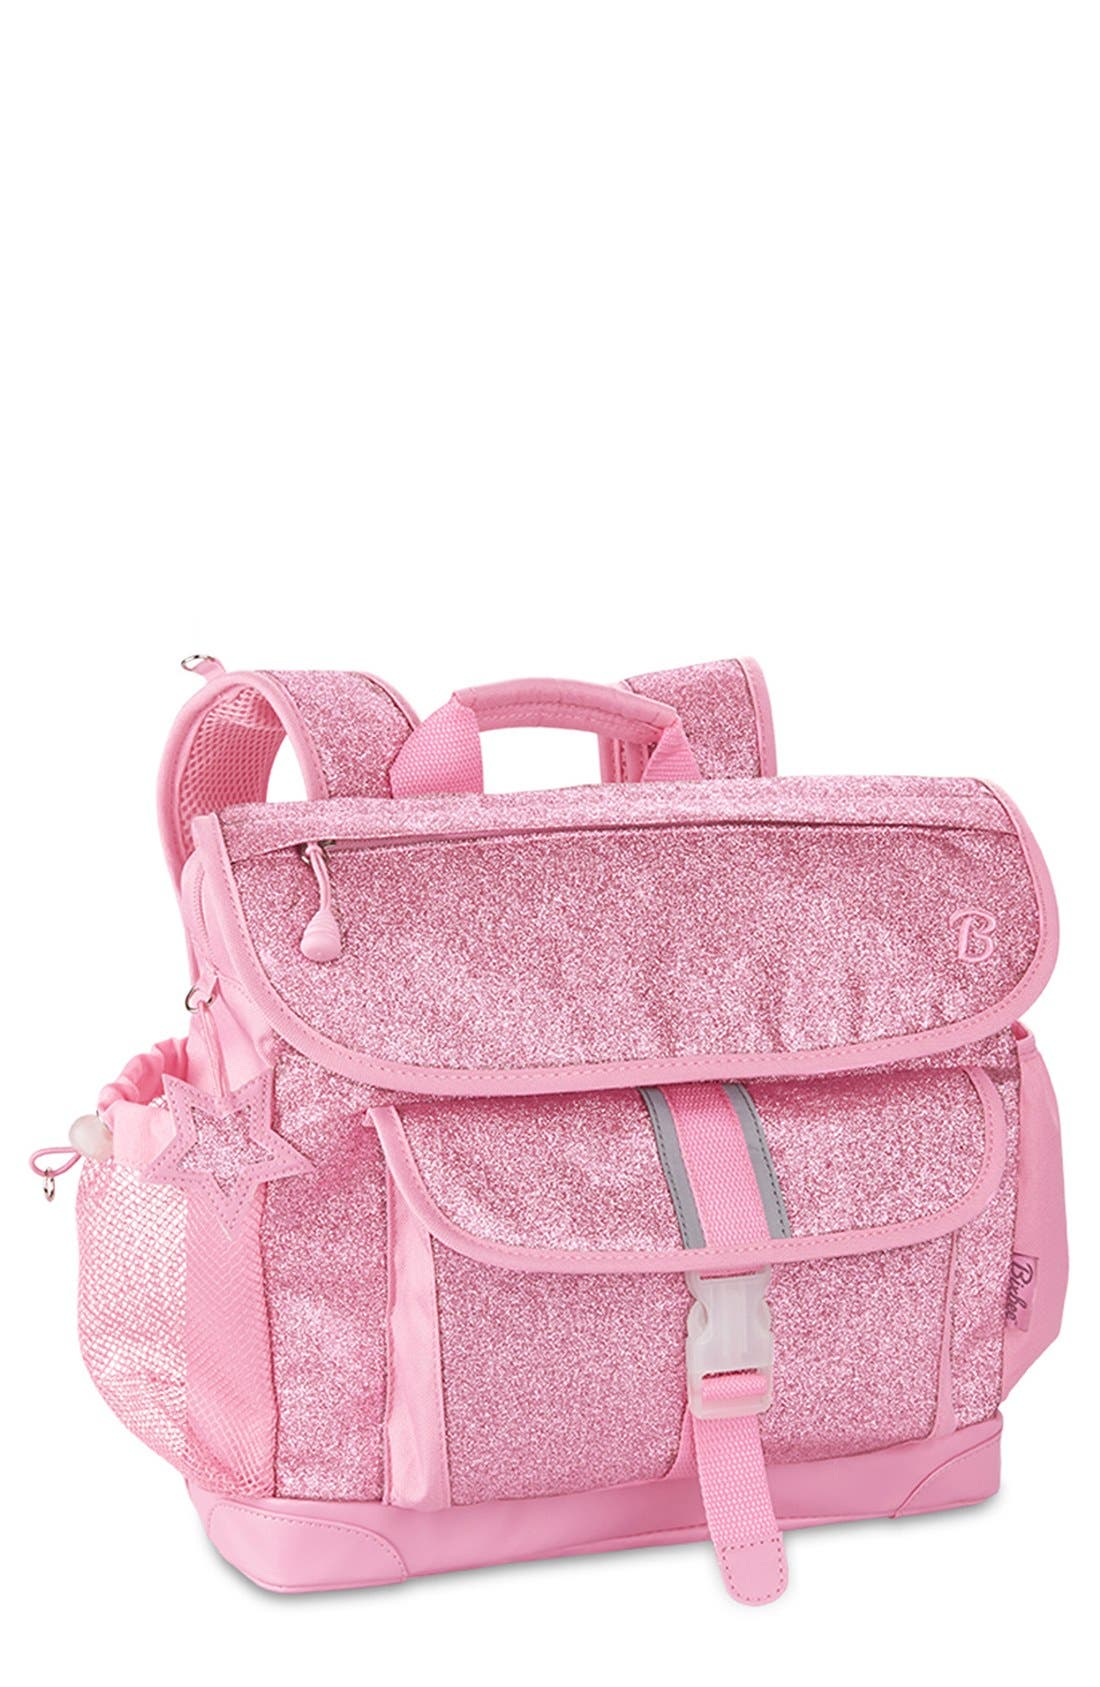 'Large Sparkalicious' Backpack,                             Main thumbnail 1, color,                             Pink